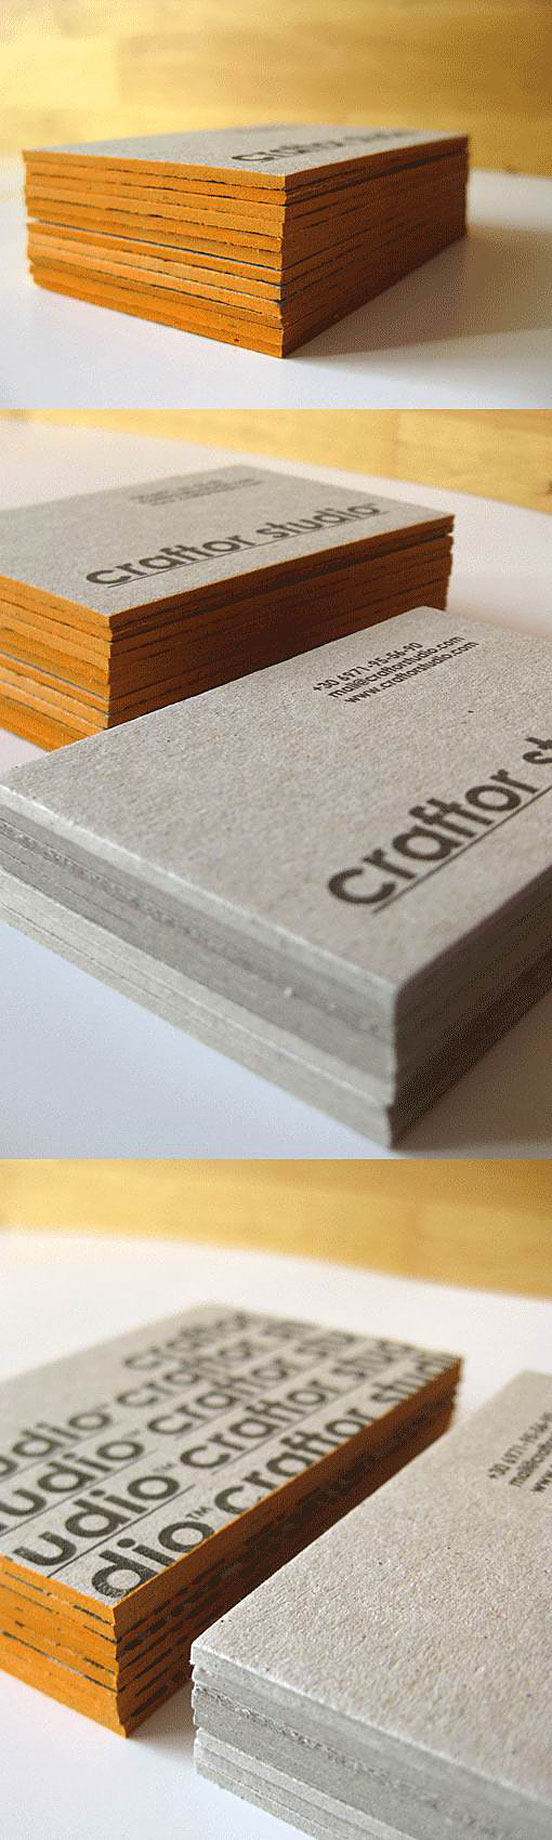 Super Thick Business Card. Too thick. | // brand | Pinterest ...